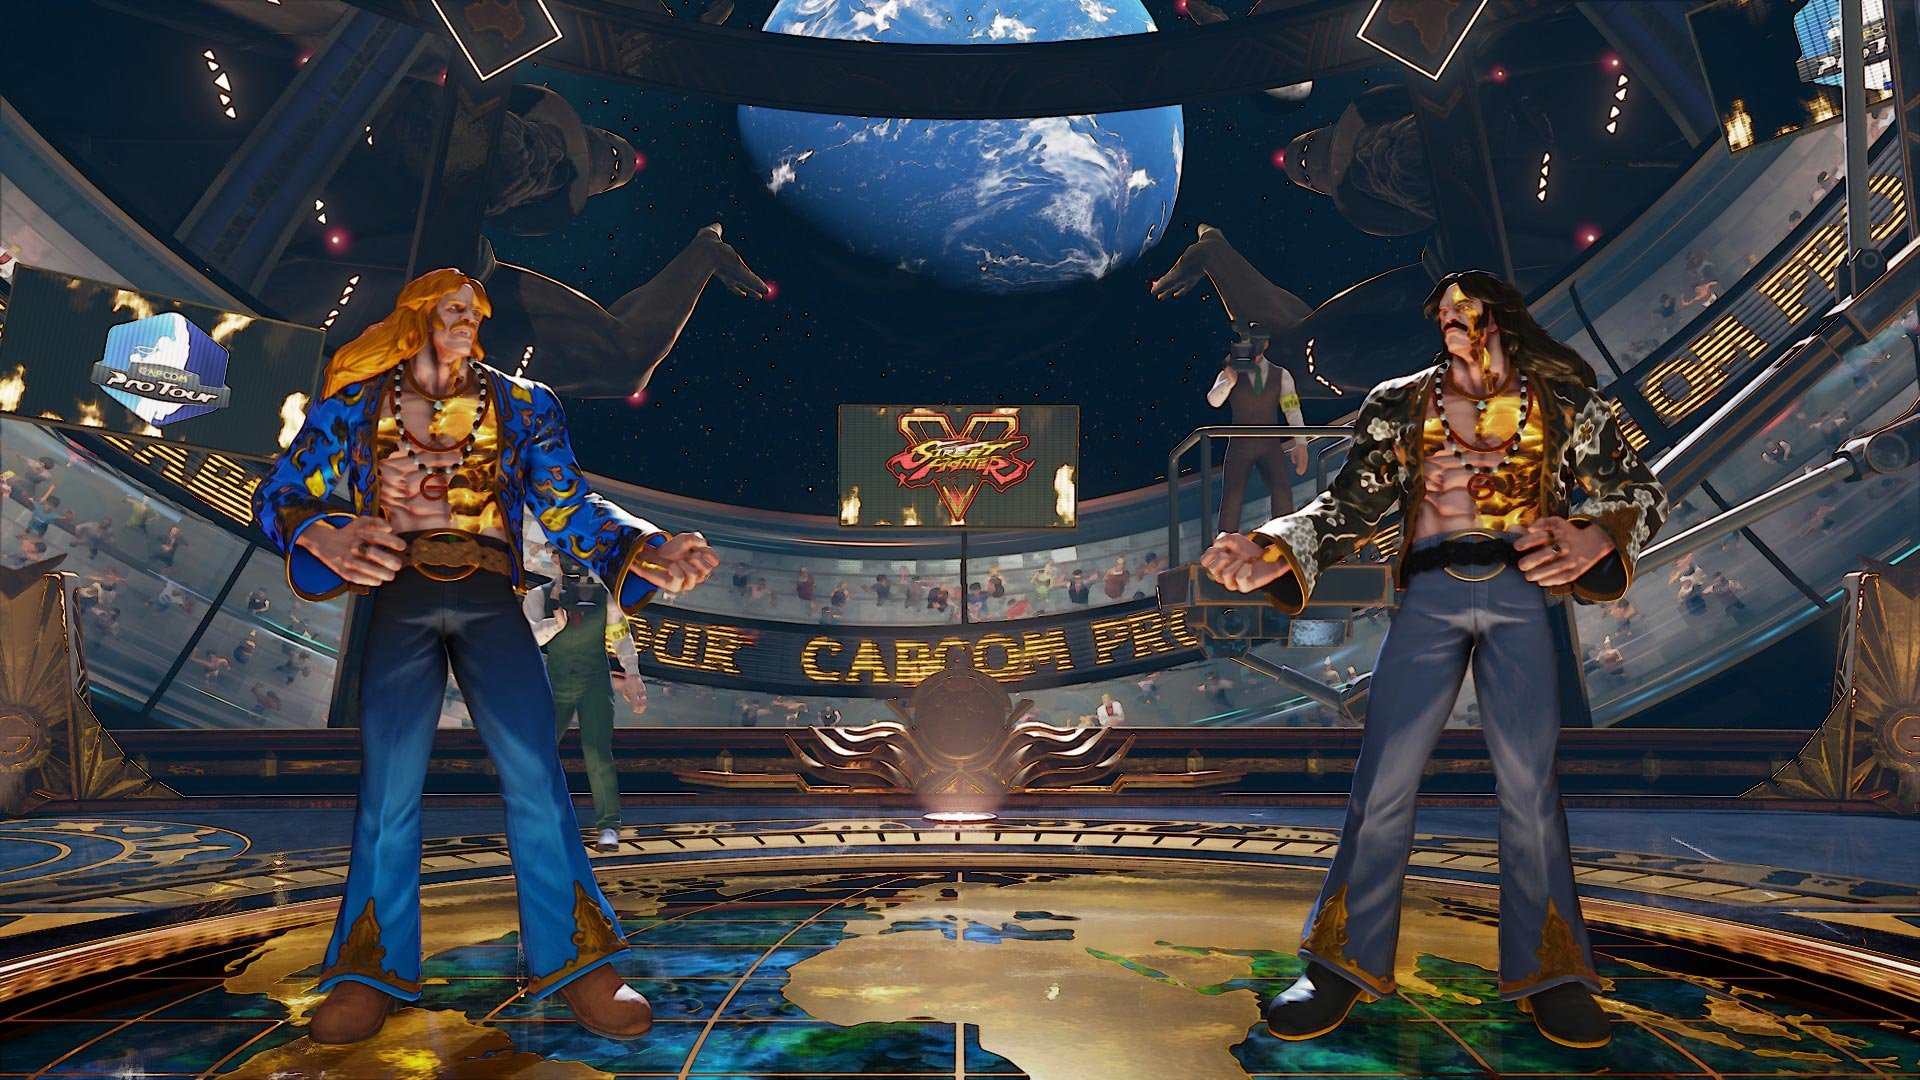 G CPT DLC costume colors and Easter egg 5 out of 5 image gallery